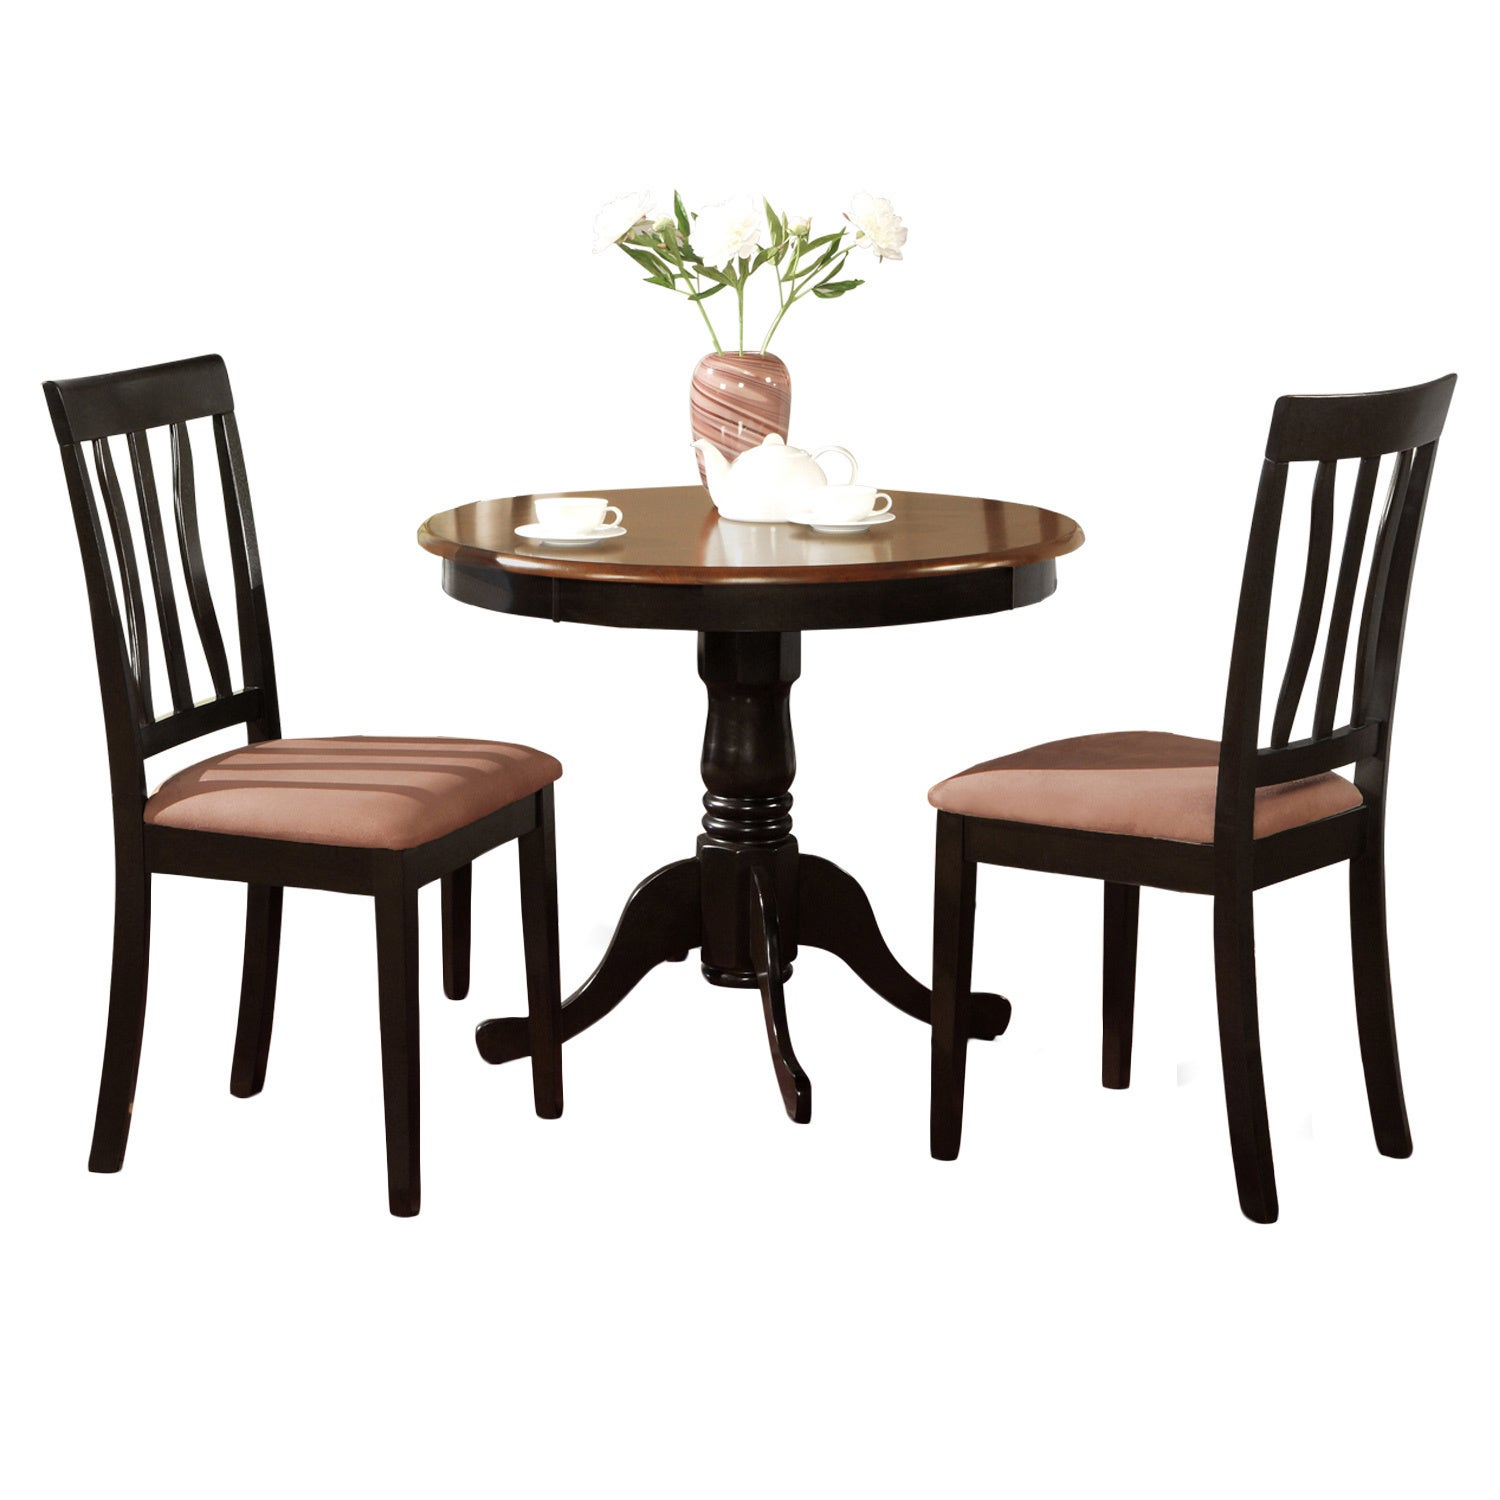 Beau Shop Black Round Kitchen Table Plus 2 Dining Room Chairs 3 Piece Dining Set    Free Shipping Today   Overstock   10201084